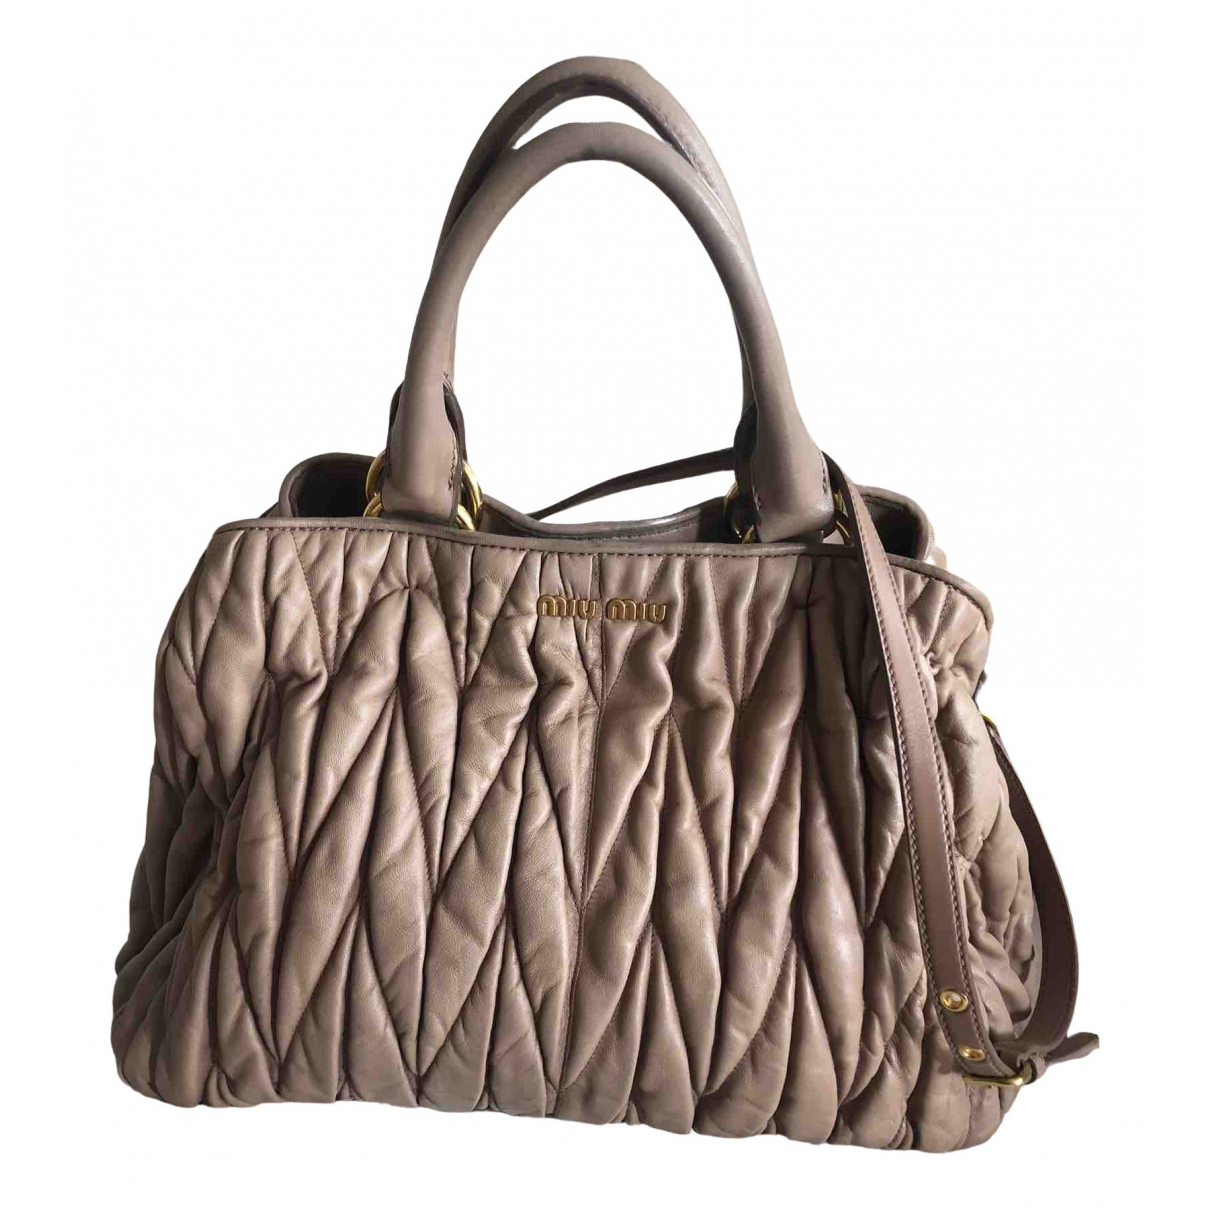 Miu Miu Matelassé Camel Leather handbag for Women N